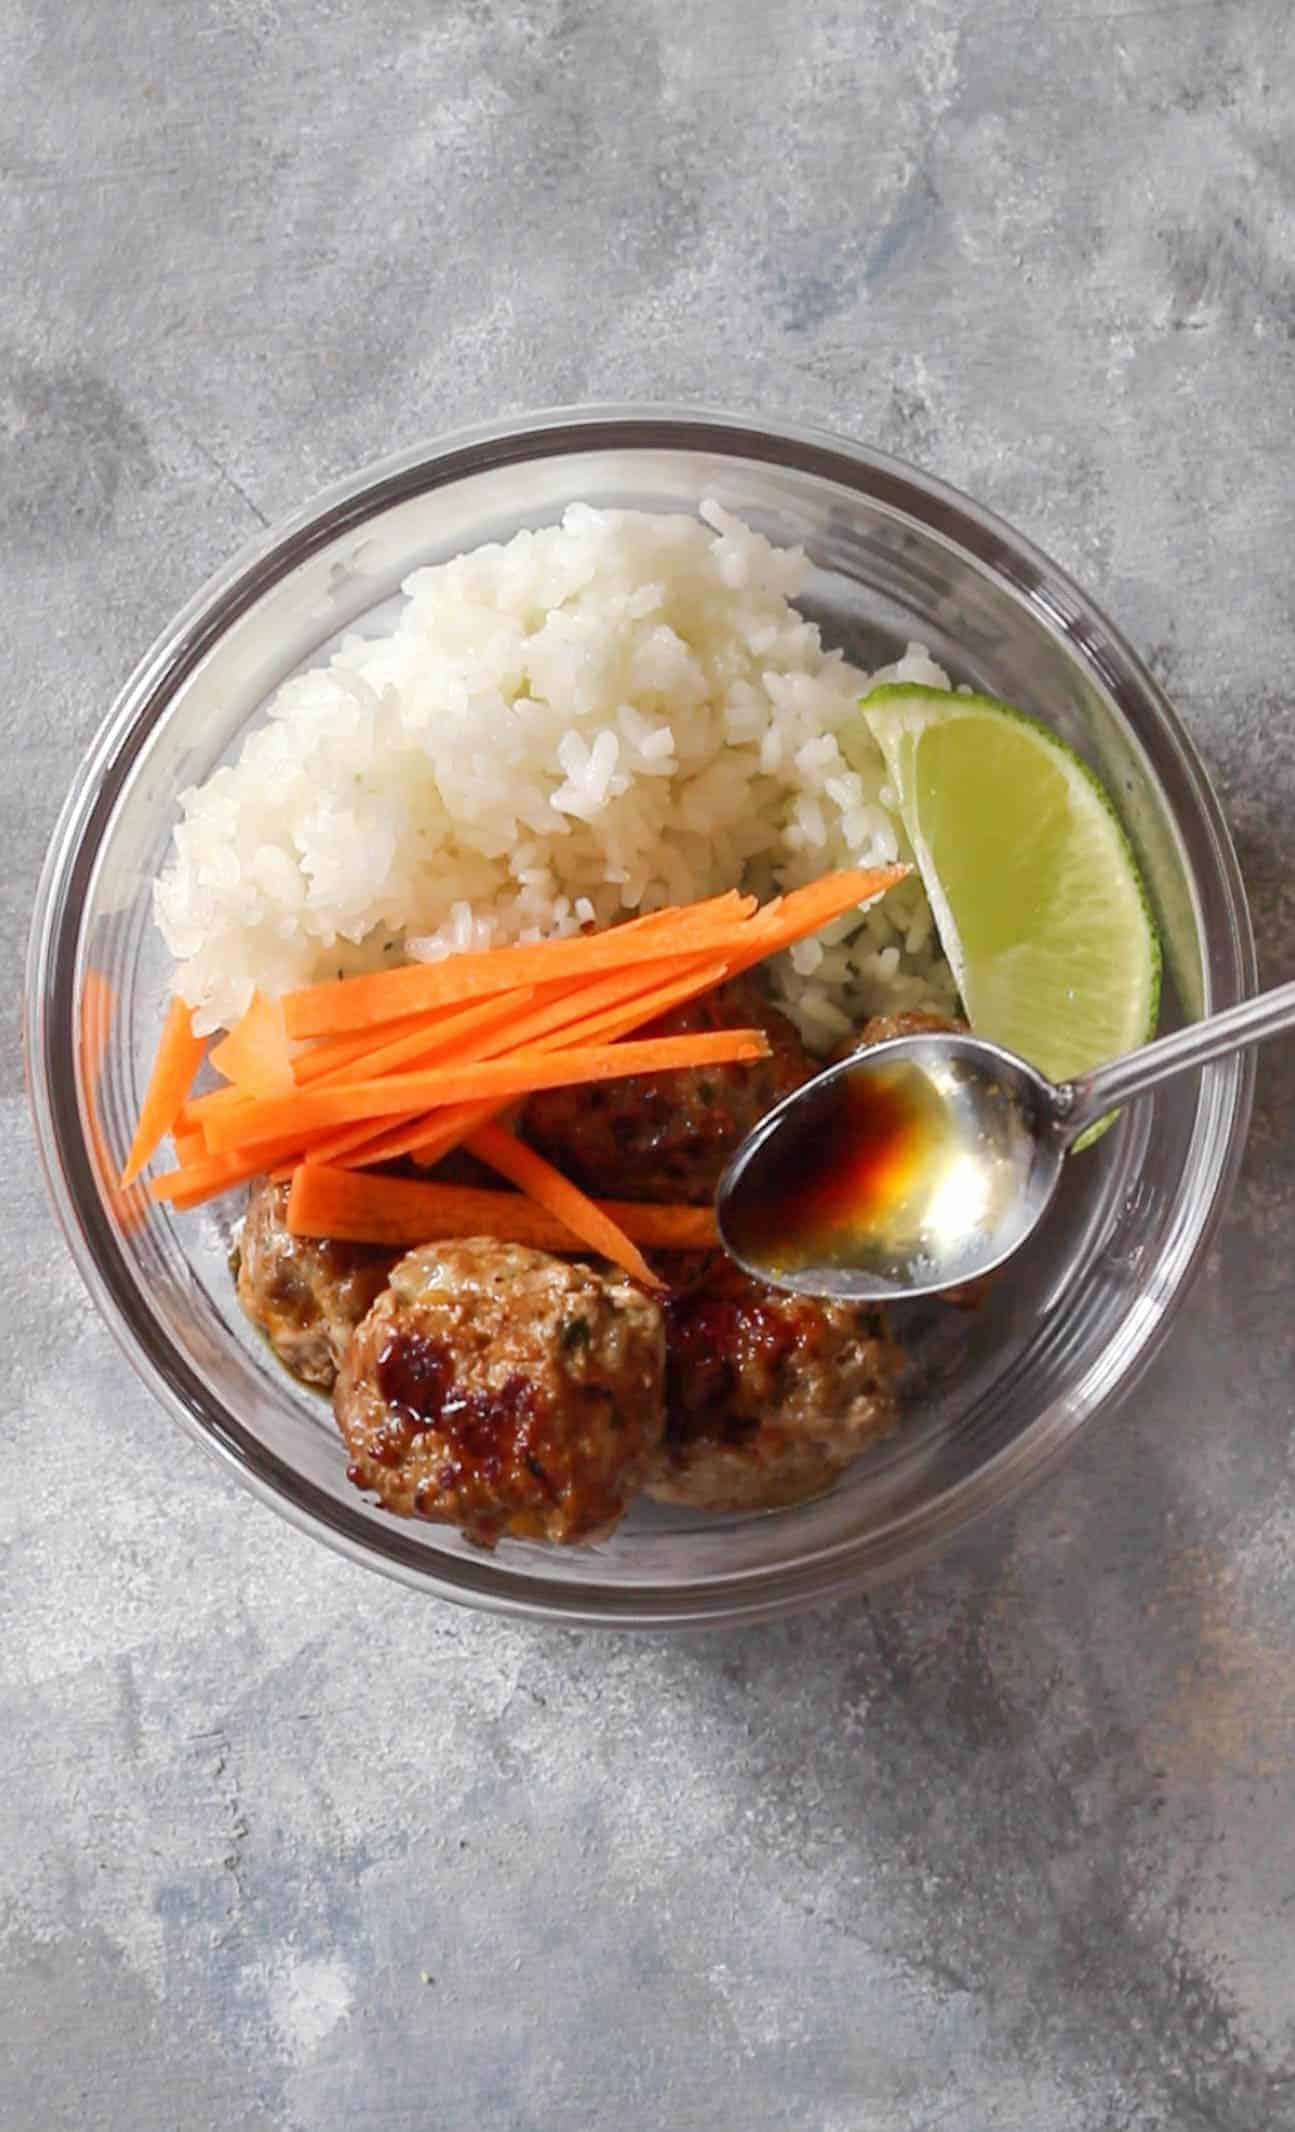 pouring sauce on bun cha meal prep | This Bun Cha Inspired Meatball Meal Prep can be made three ways: Instant Pot, Oven, and Stovetop! A classical Vietnamese recipe made easy!